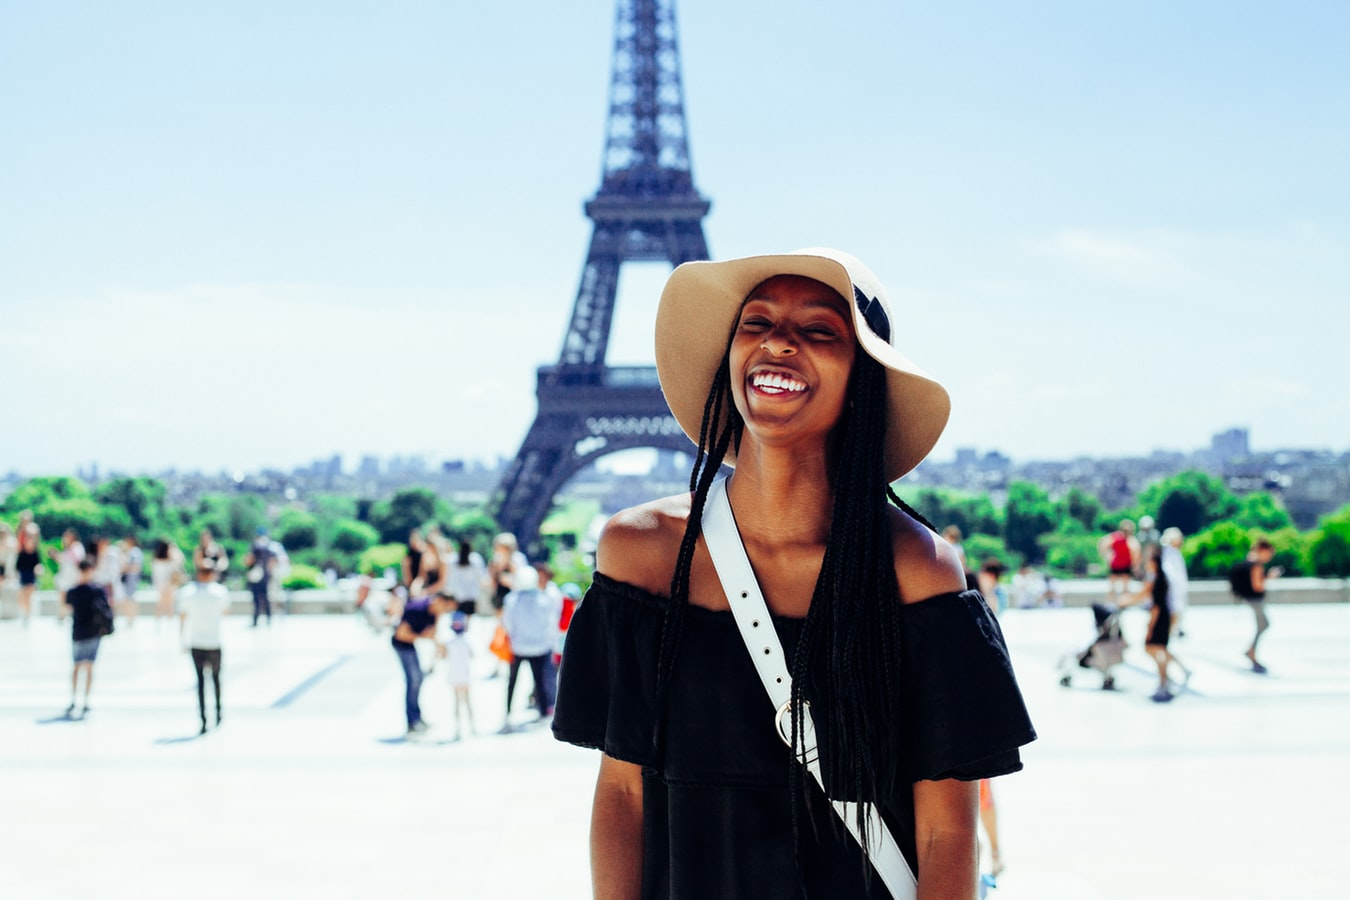 Woman smiling while on Paris